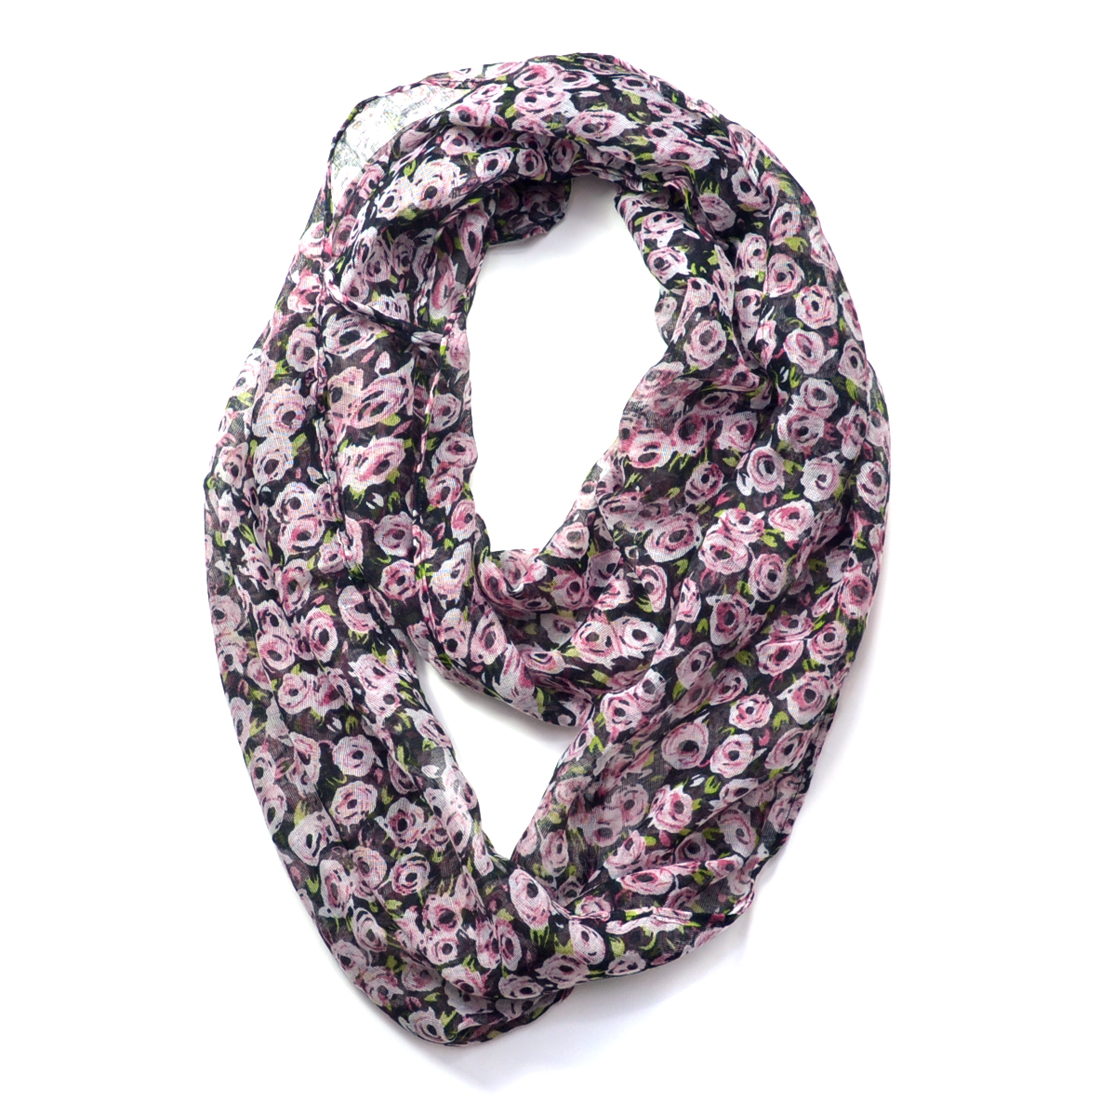 Floral Print Infinity Scarf